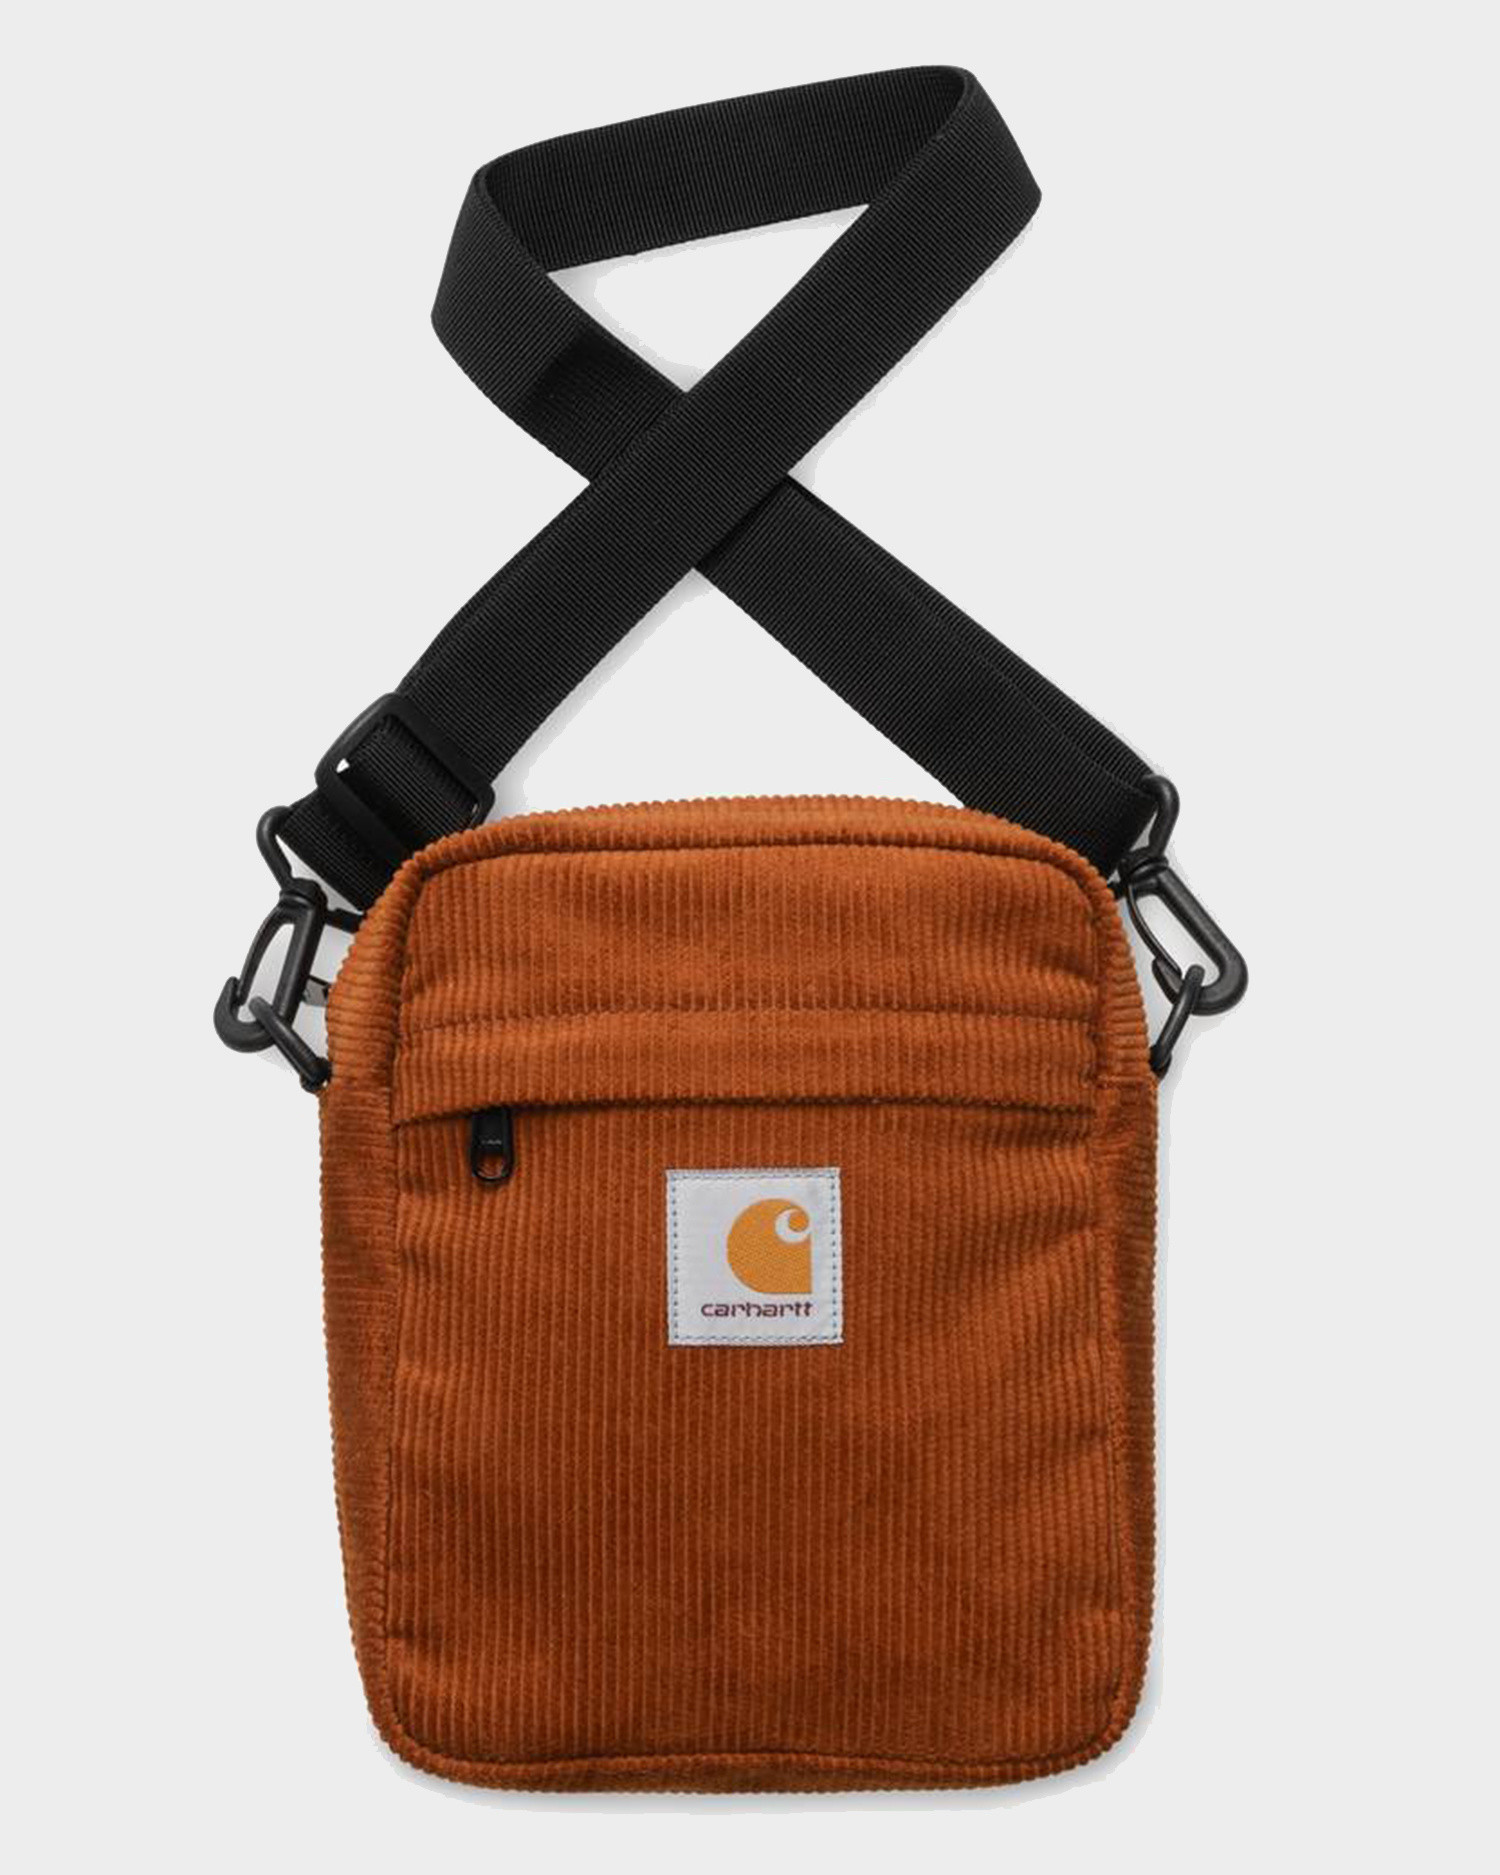 Carhartt Cord Bag Small Brandy